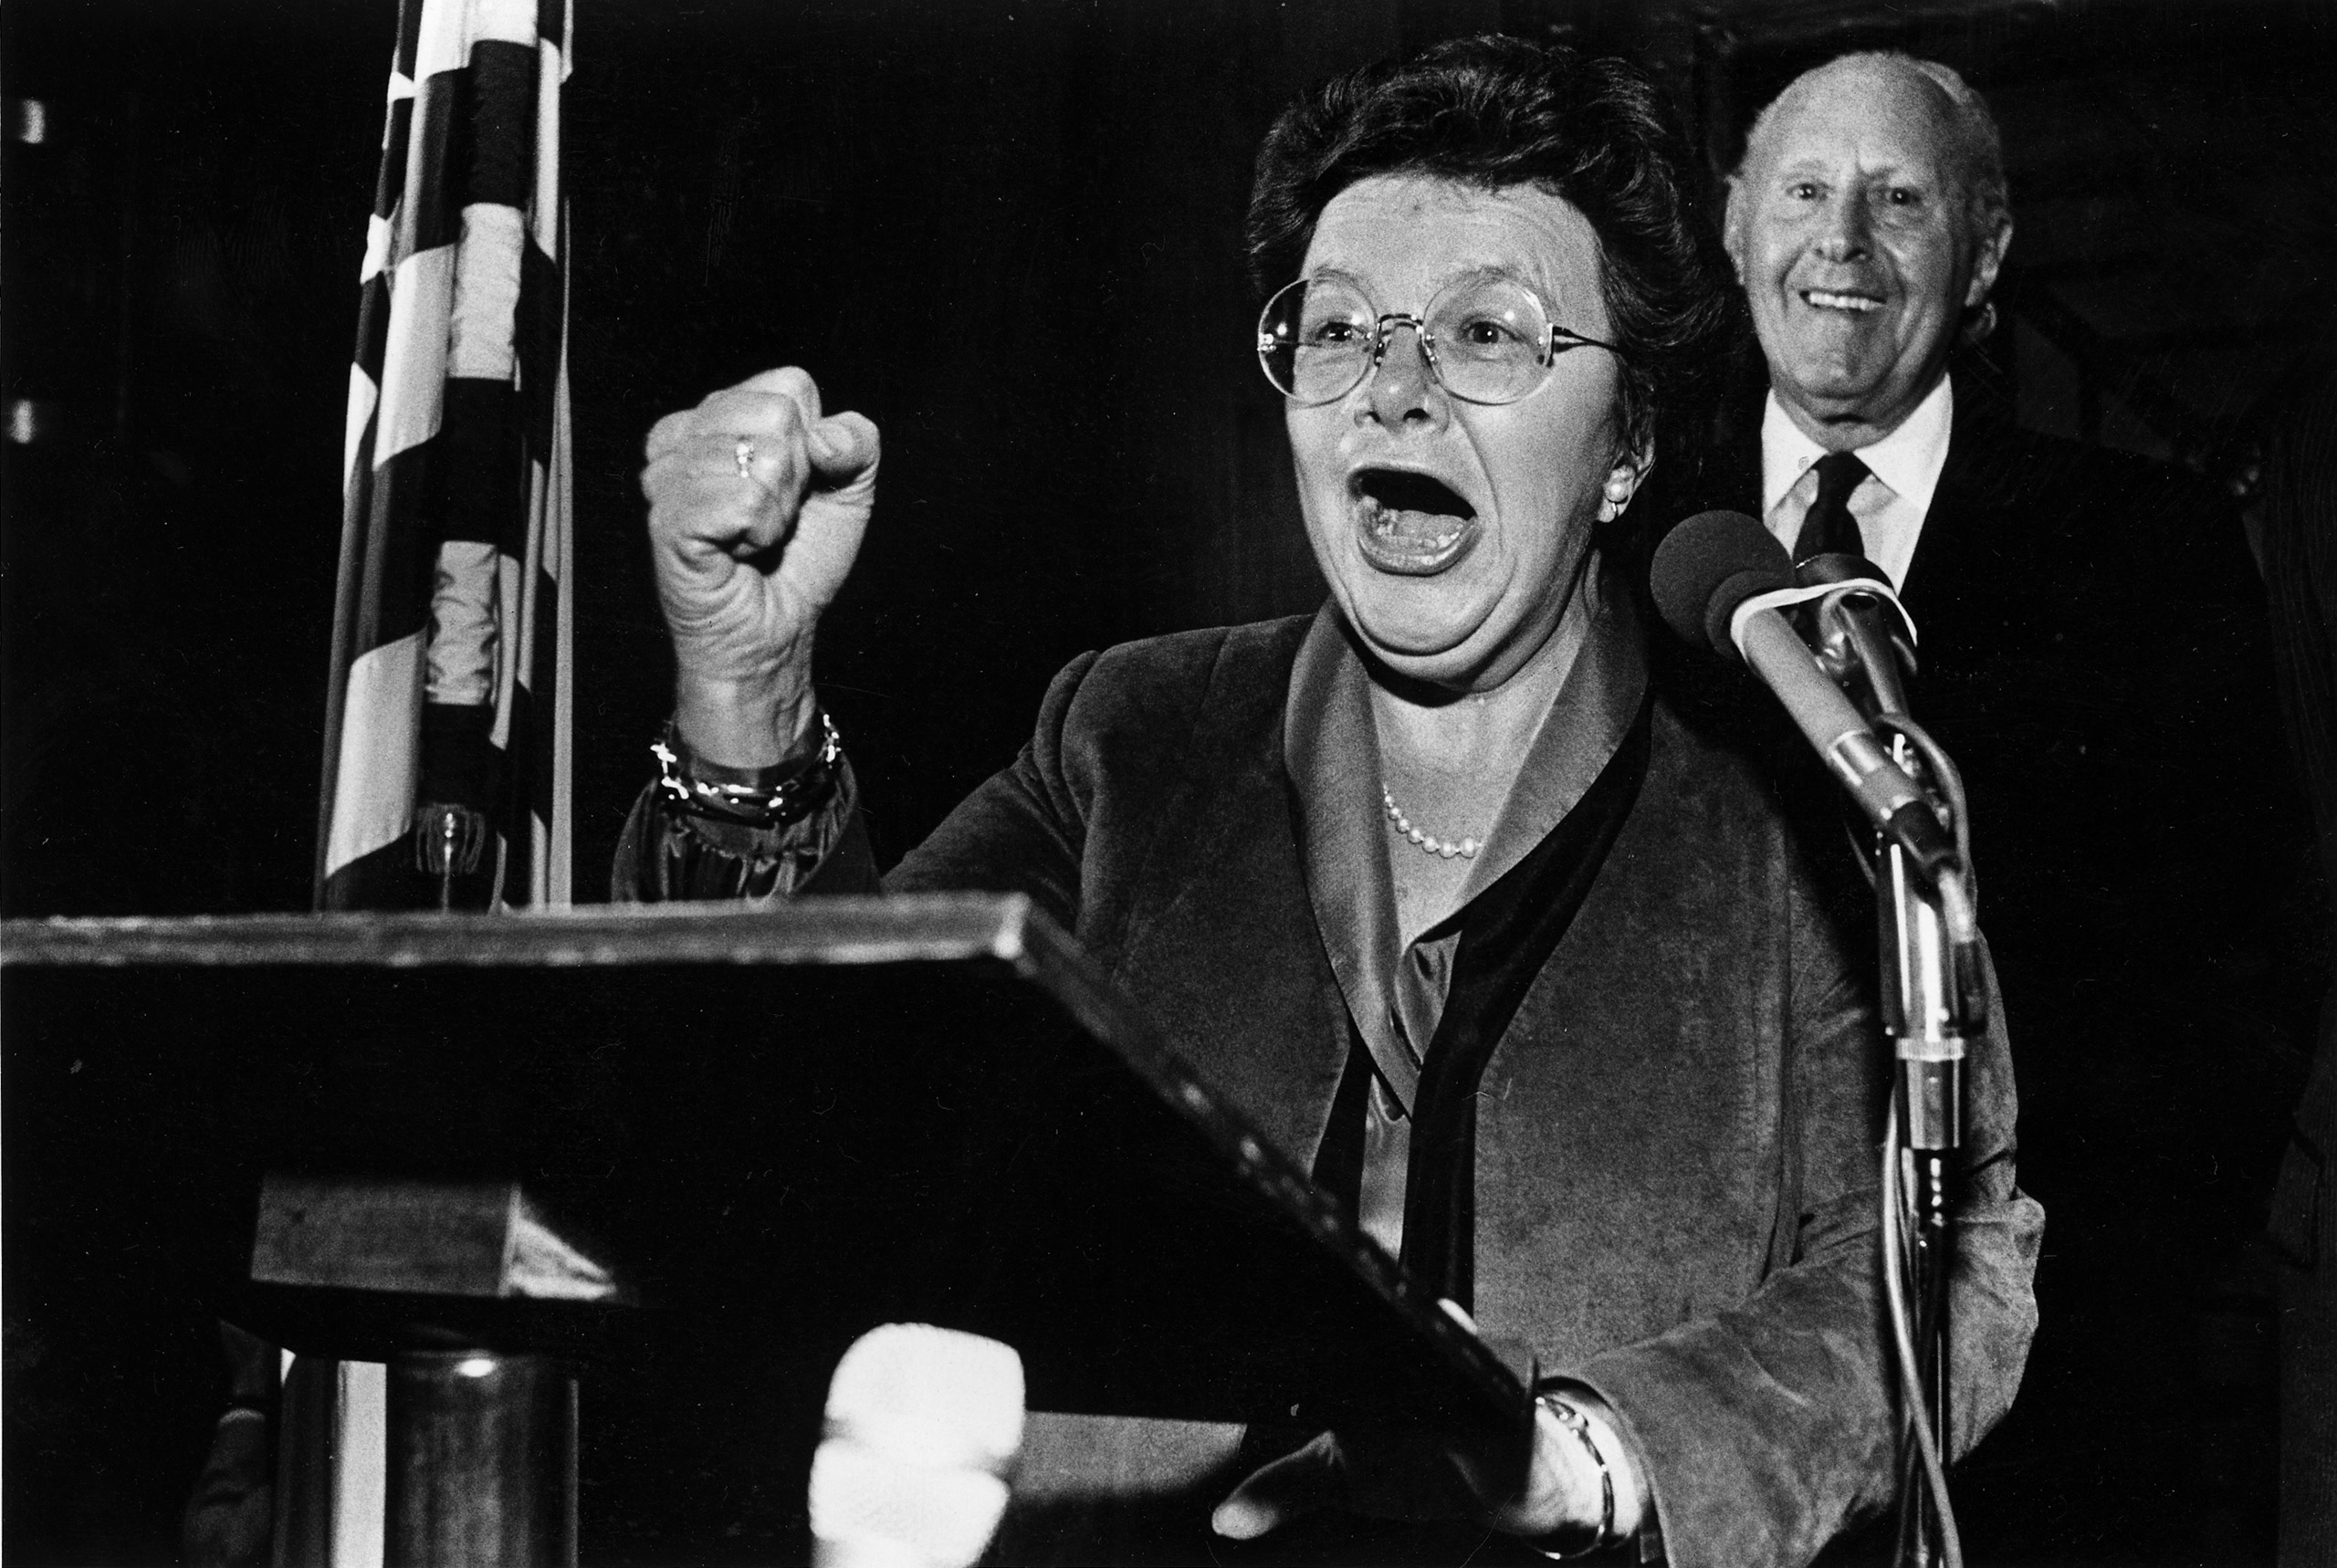 Barbara Mikulski at her reception following her swearing-in at the U.S. Capitol in Washington, DC on Jan. 6, 1987.